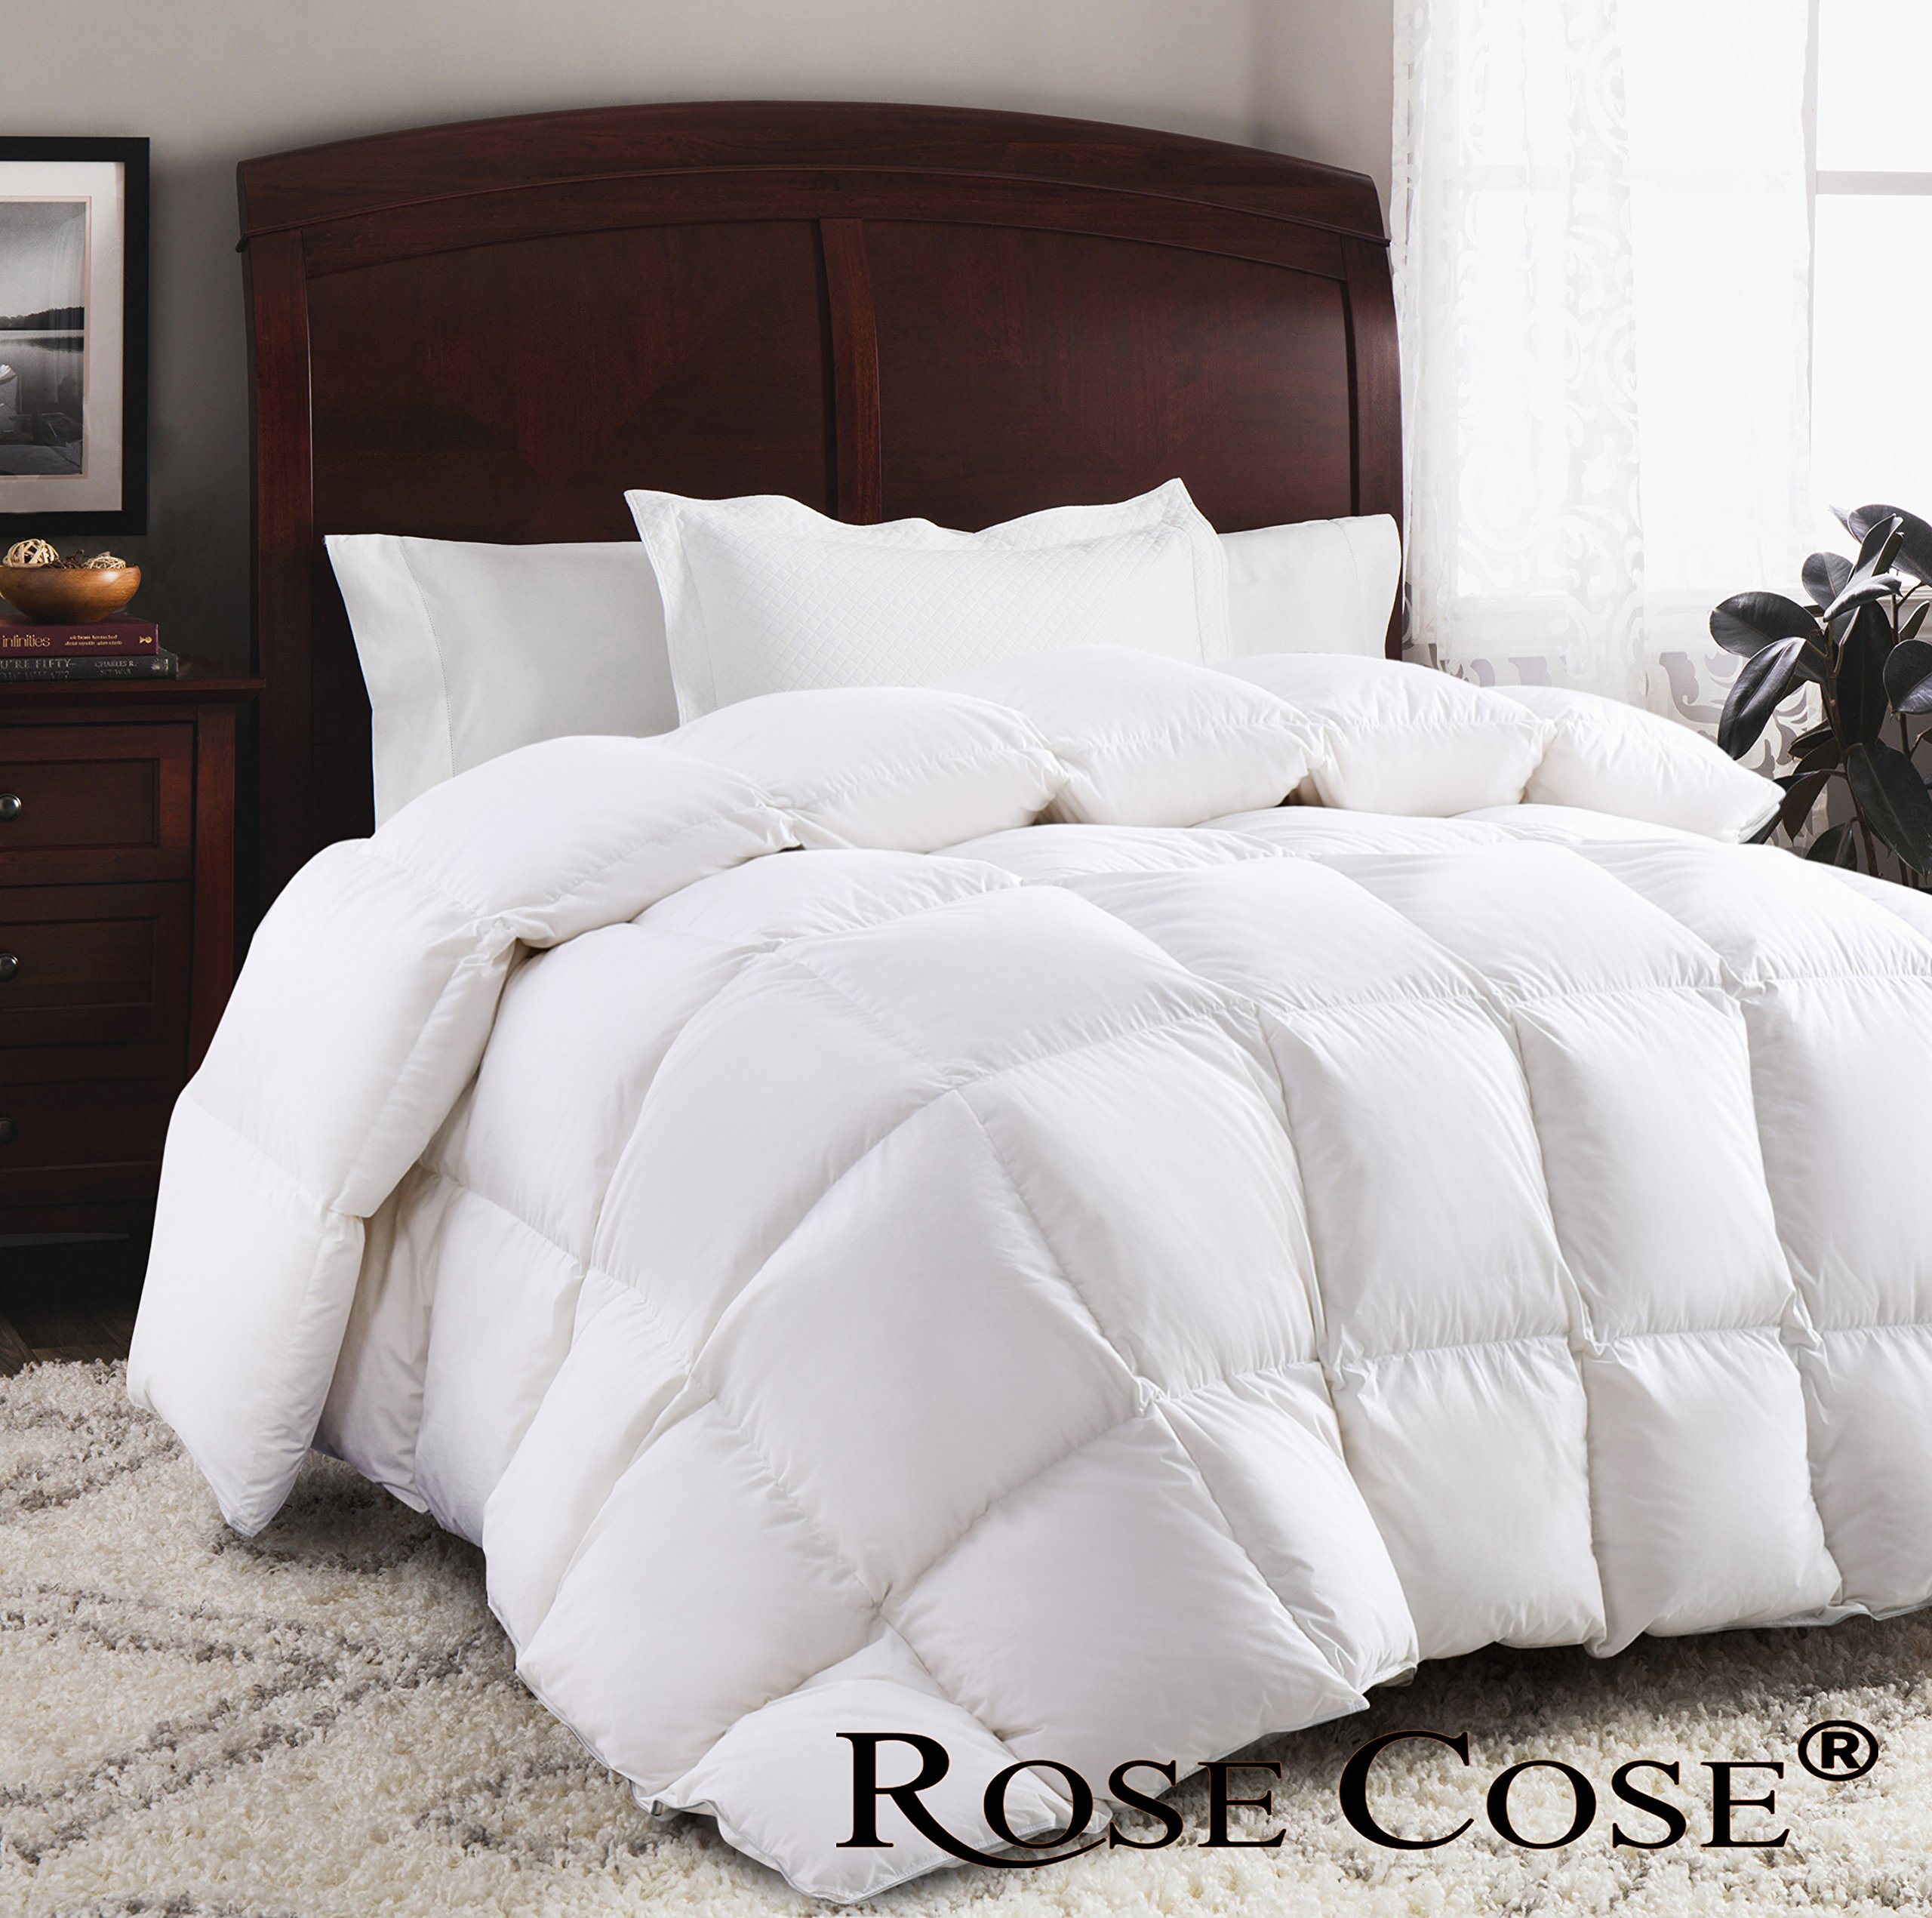 ROSECOSE Luxurious Goose Down Comforter Queen Duvet Insert All Seasons Solid White Hypo-allergenic 1200 Thread Count 750+ Fill Power 100% Cotton Shell Down Proof with Tabs (Queen, White) by ROSECOSE